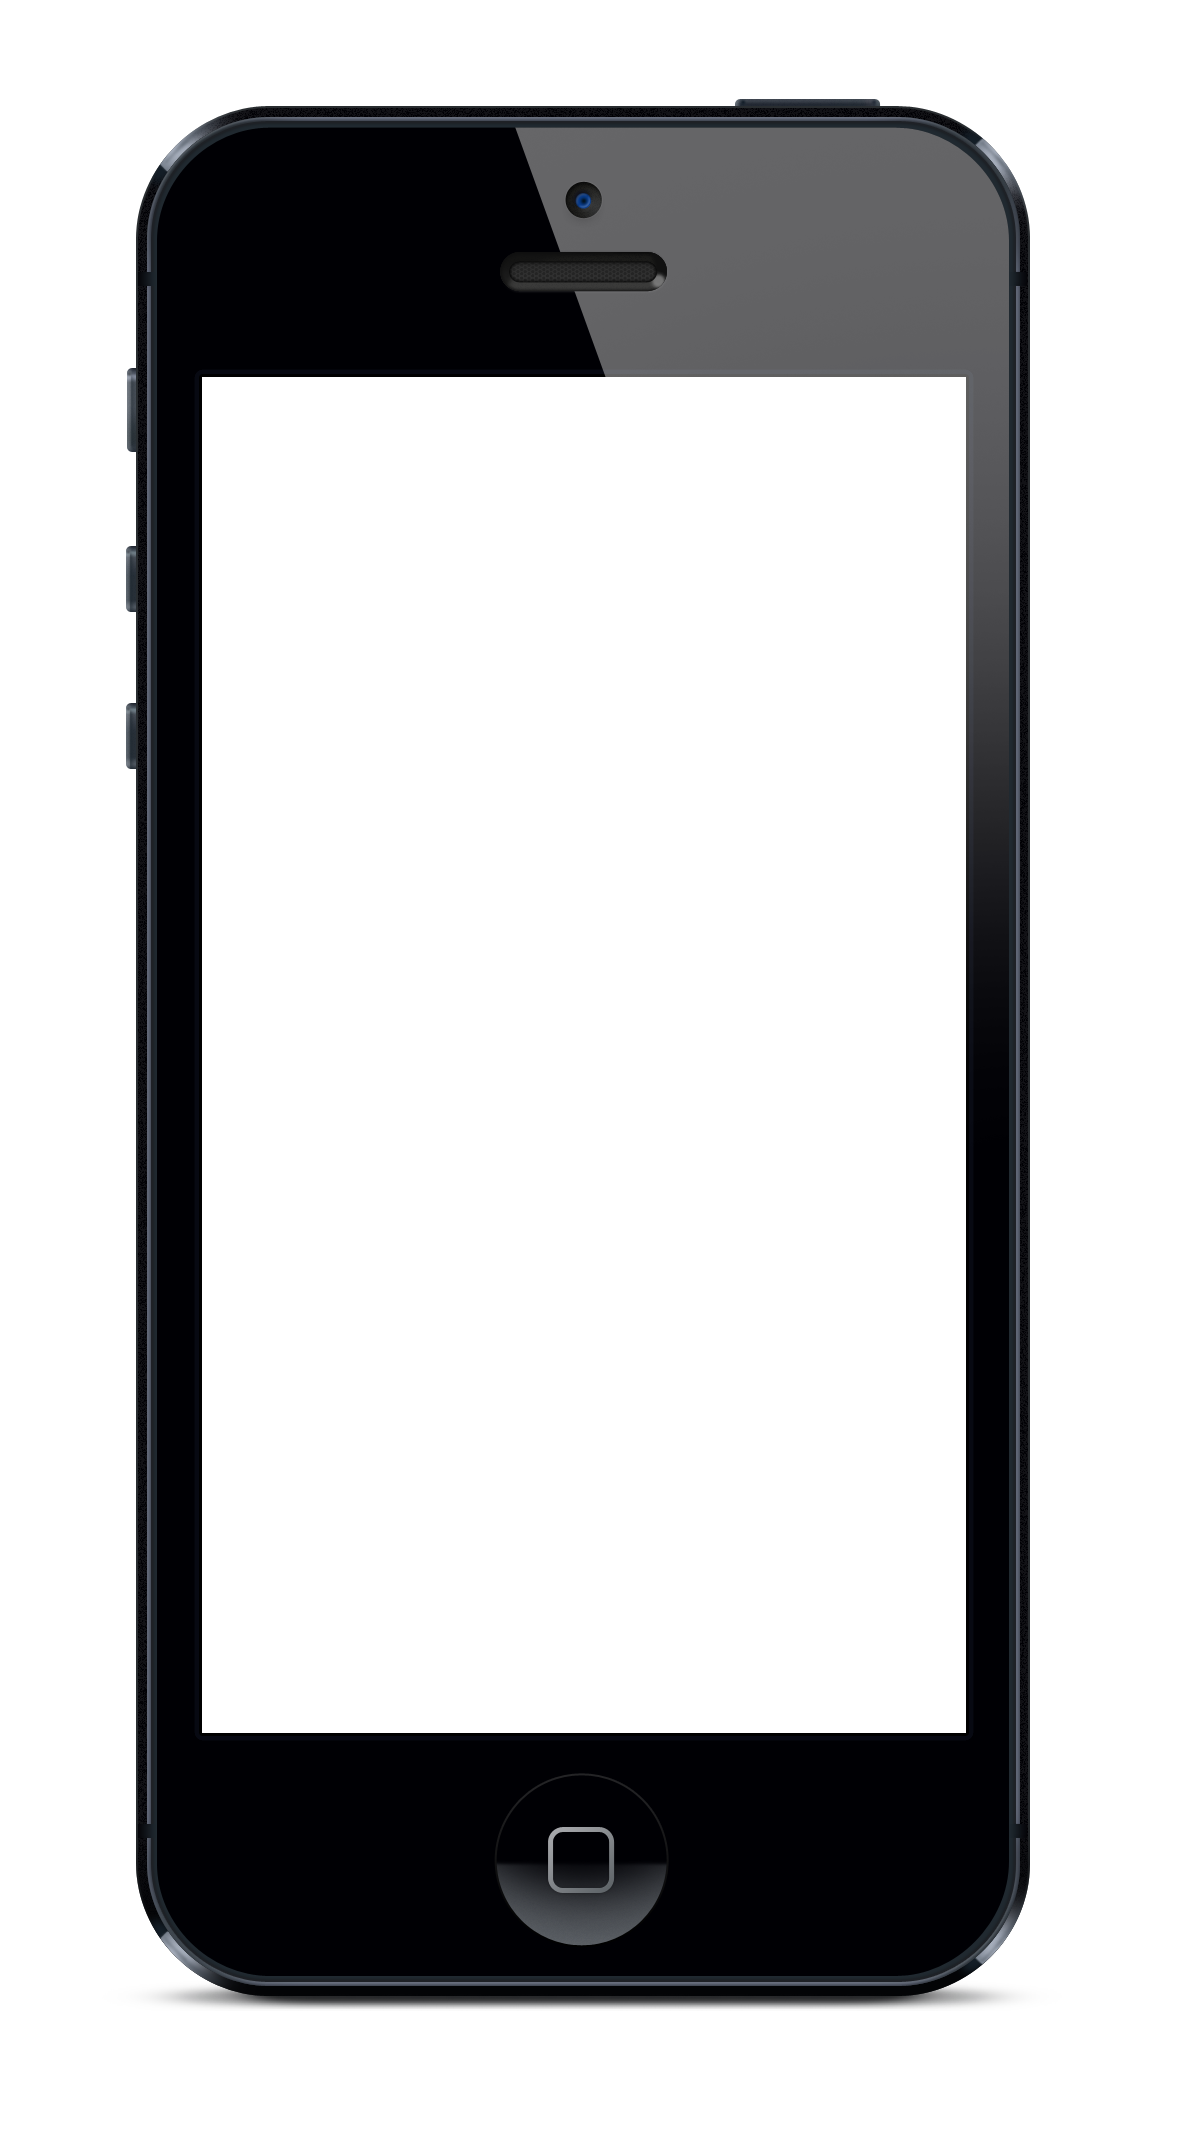 Blank IPhone X image #45236